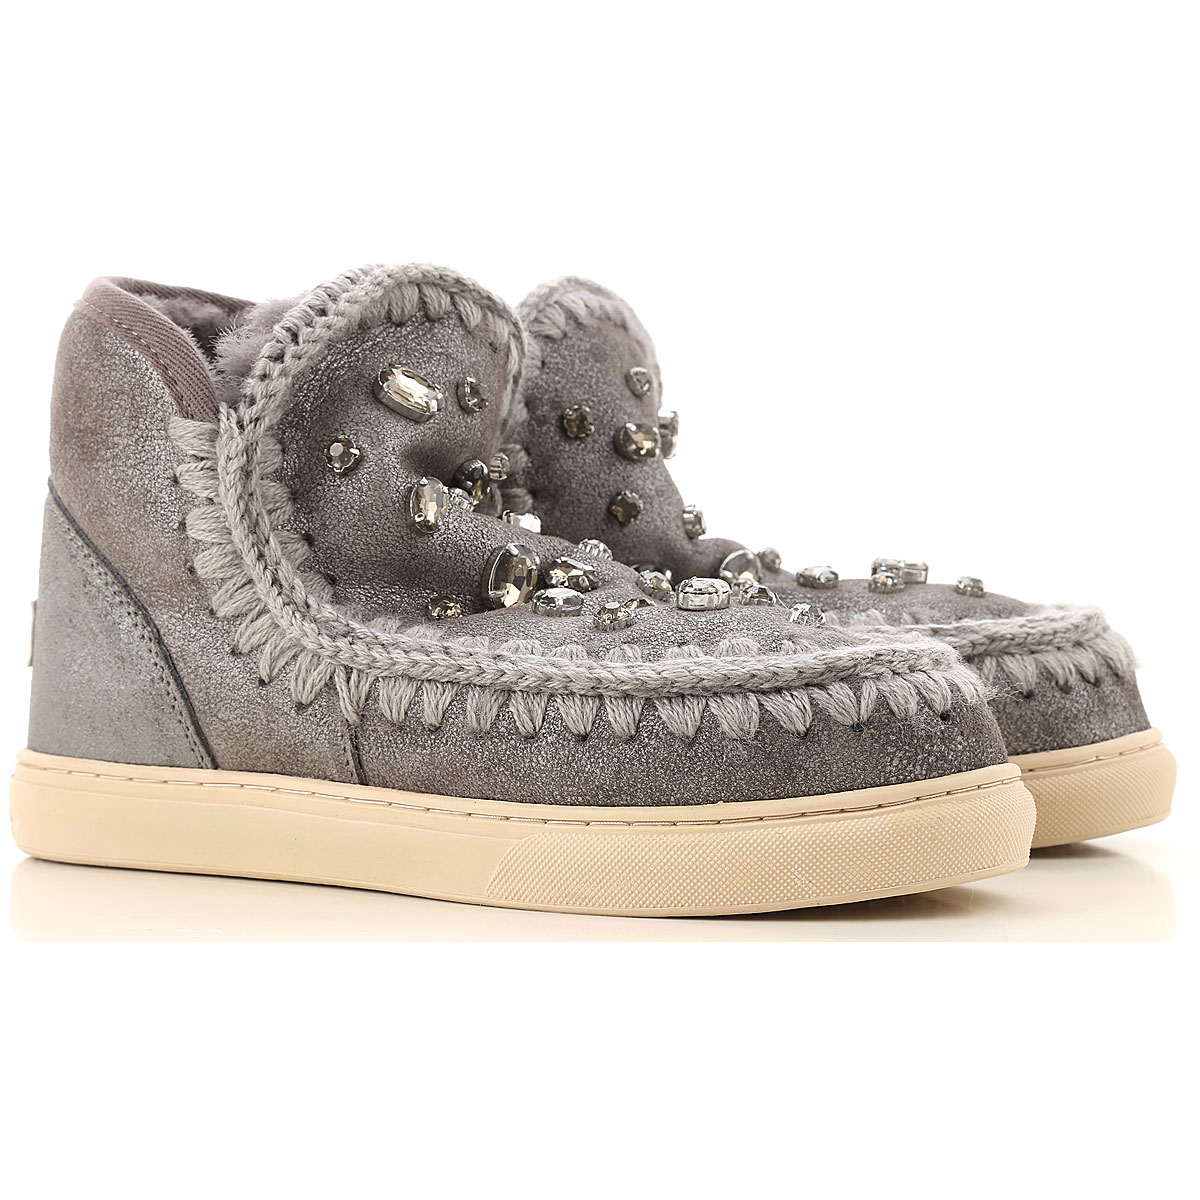 Mou Boots for Women, Booties On Sale, Silver, Leather, 2019, EUR 38 - UK 5 - USA 7 EUR 36 - UK 3 - USA 5.5 EUR 39 - UK 6 - USA 8.5